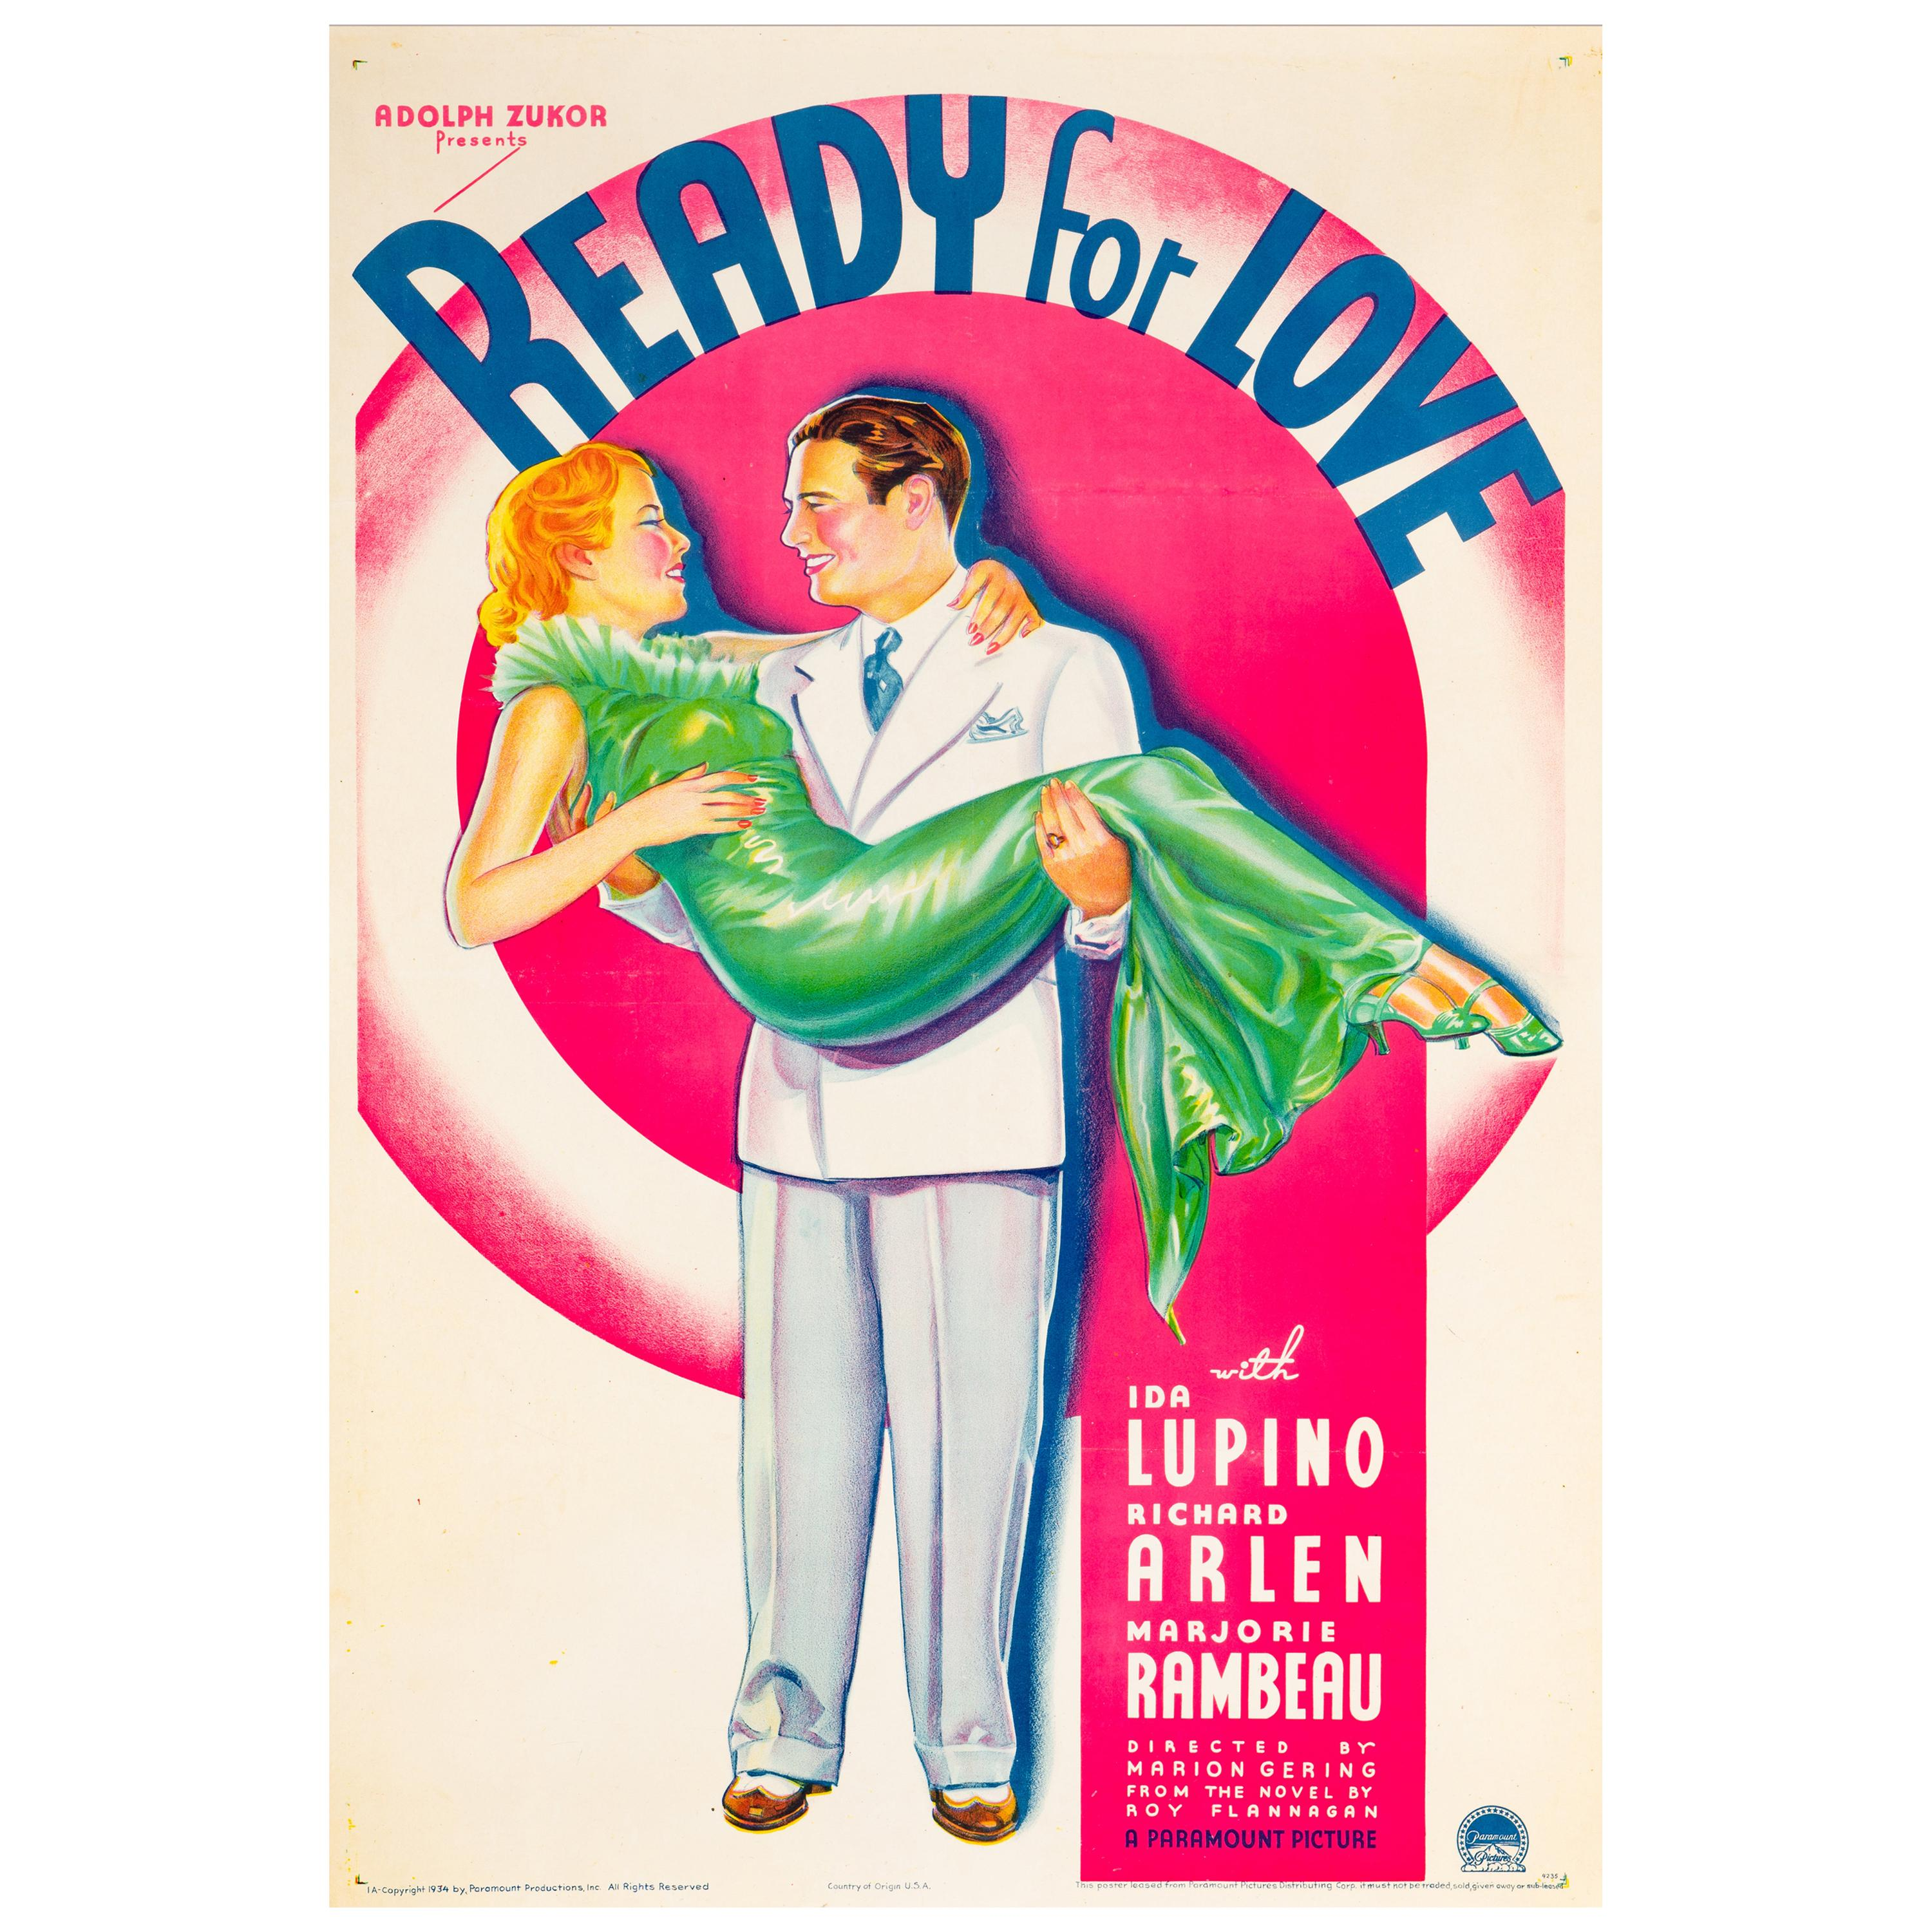 'Ready For Love' Original Vintage US One Sheet Movie Poster, 1934